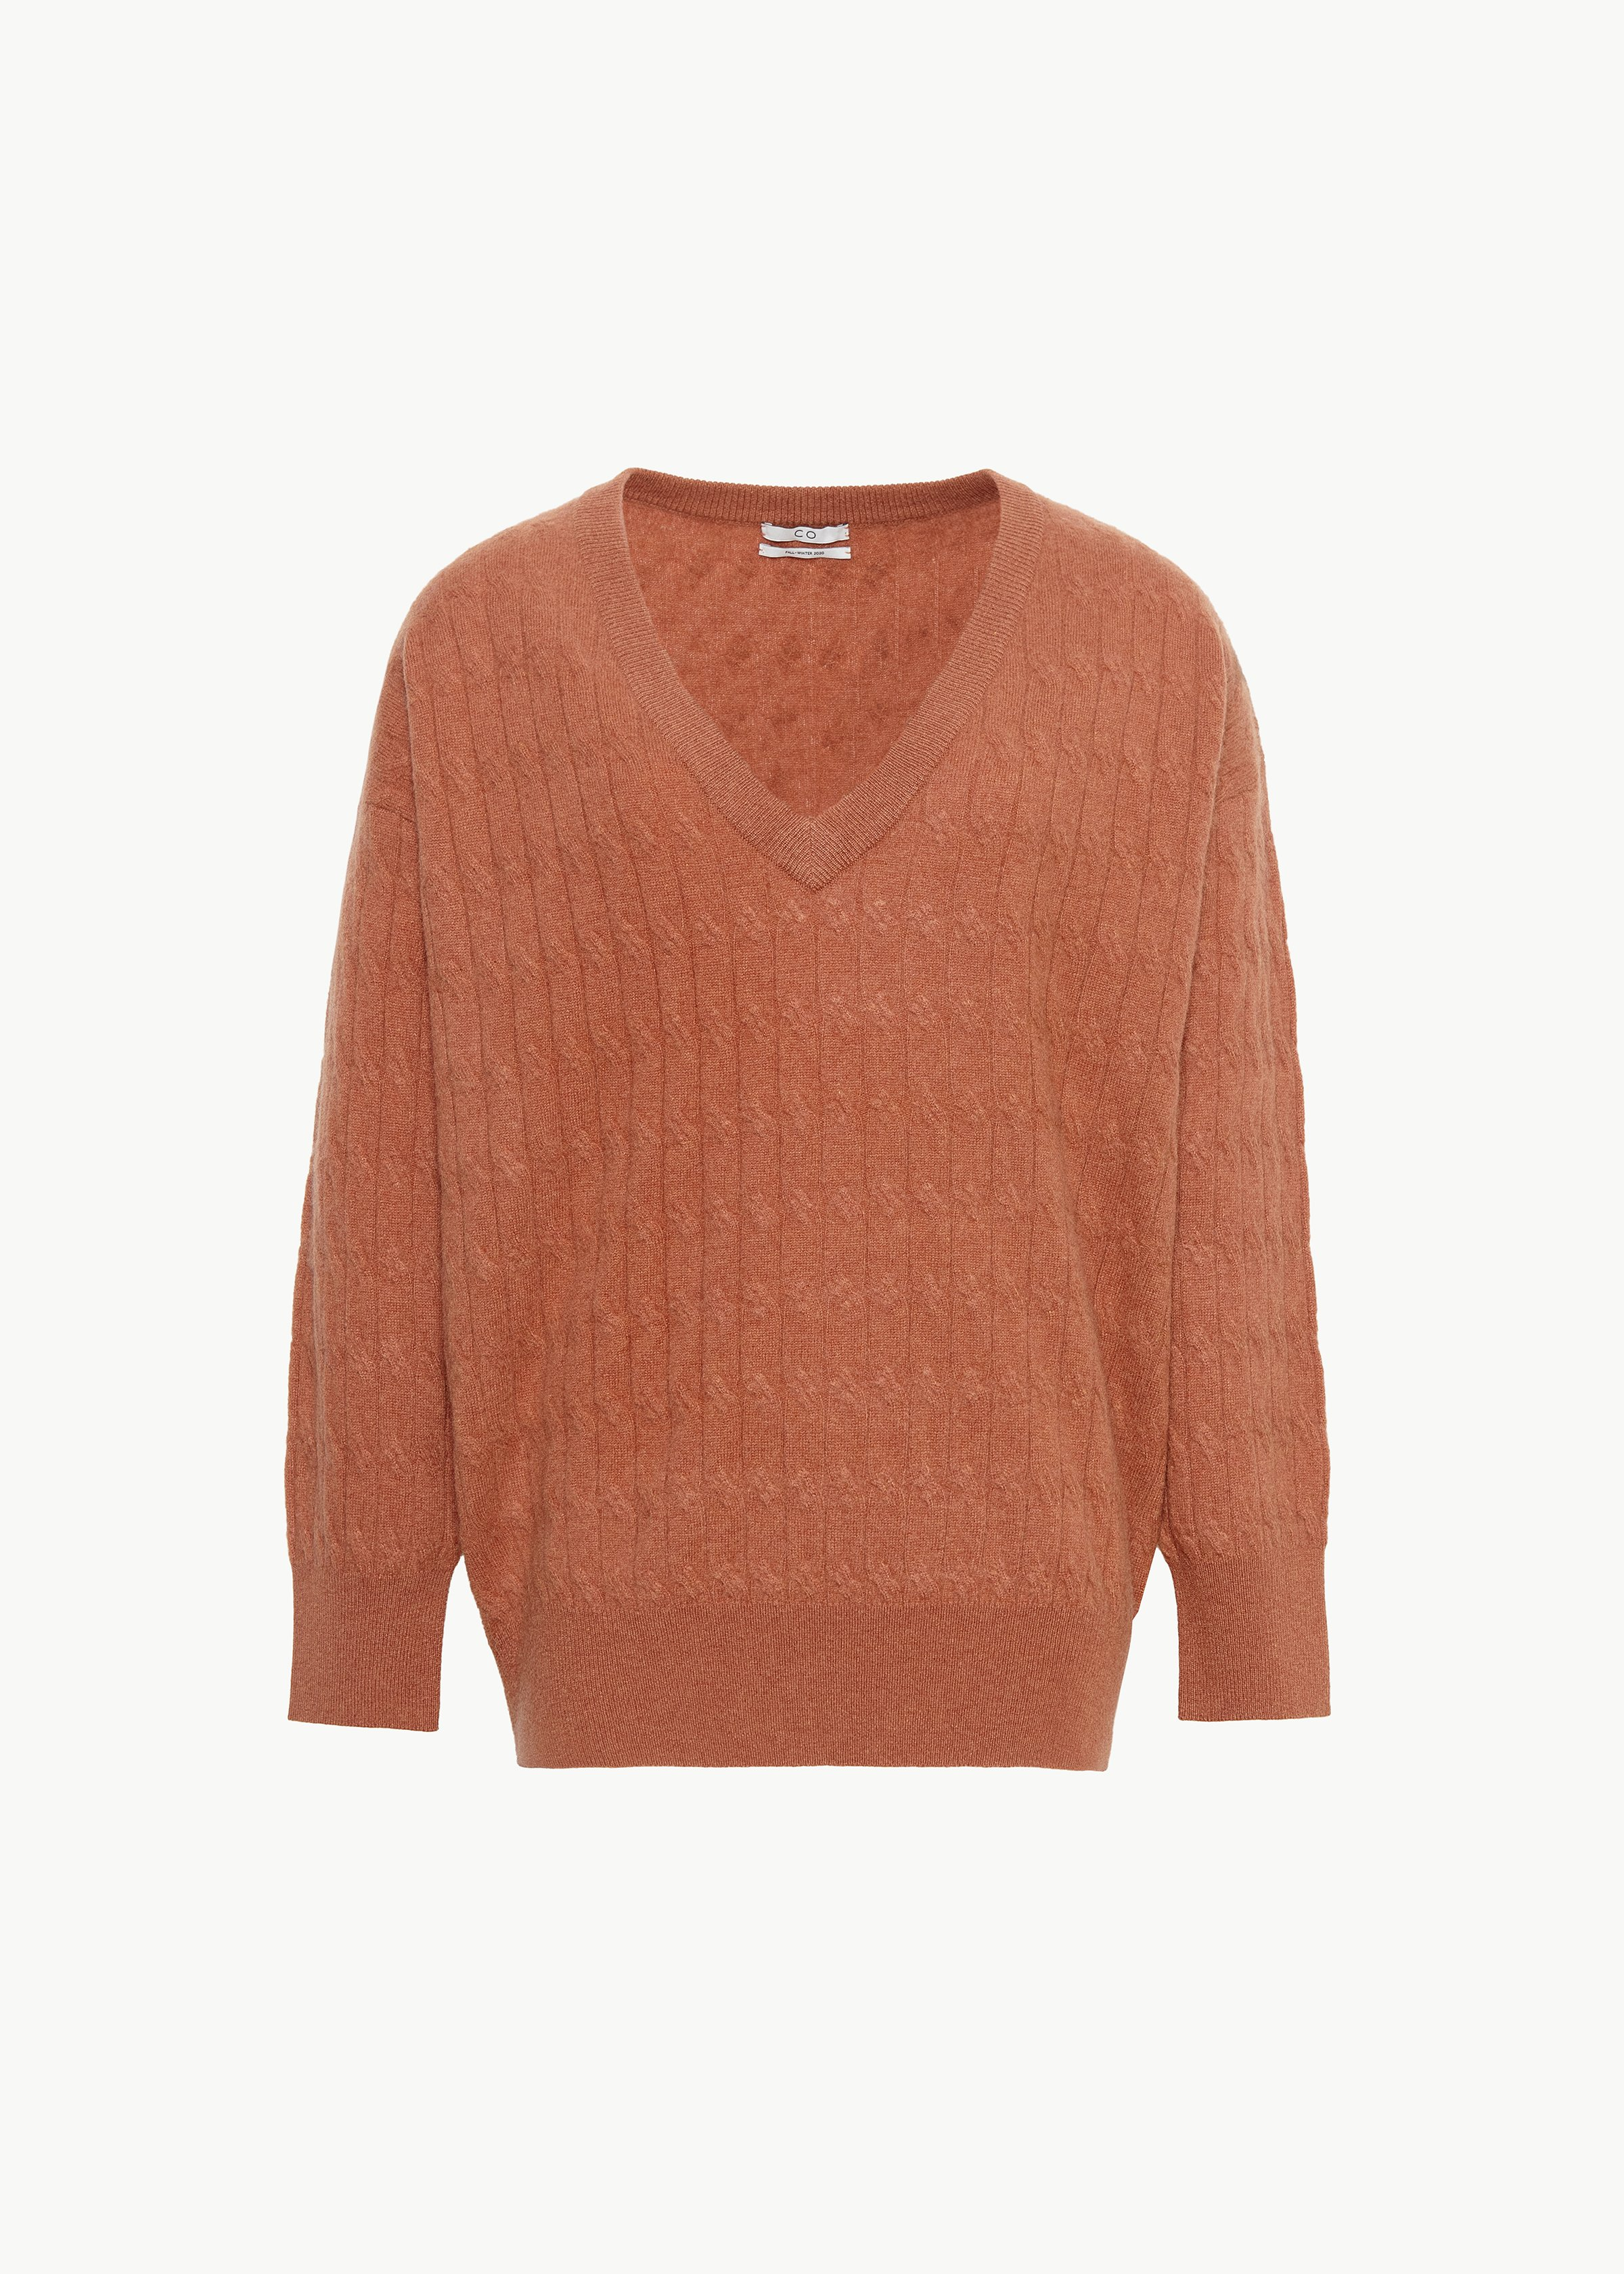 Cable Knit V Neck Sweater in Cashmere - Sand in Copper by Co Collections